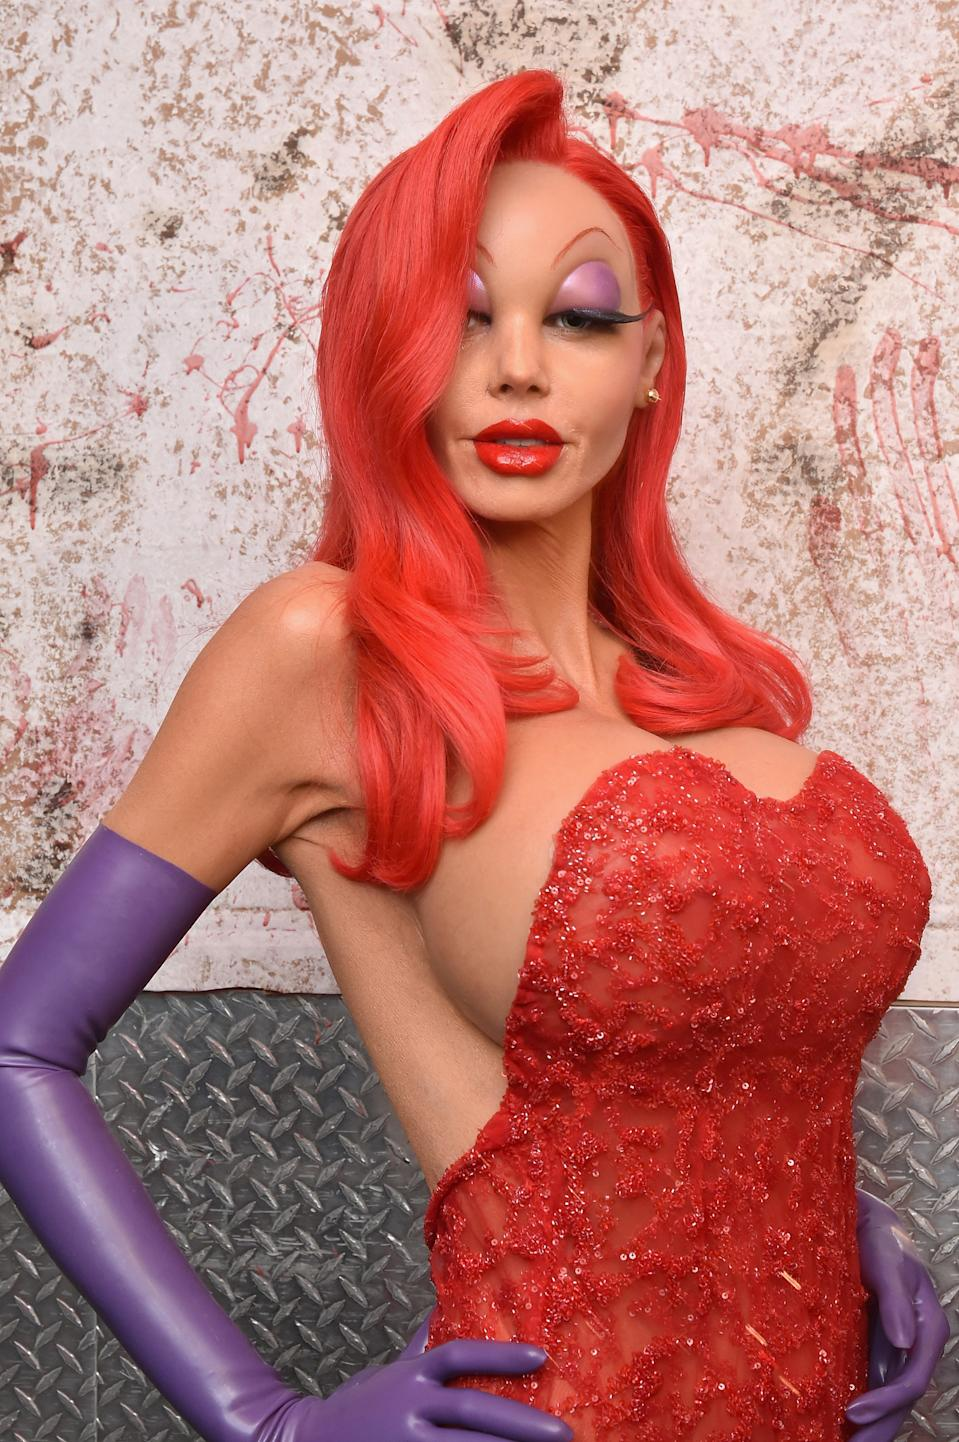 """<strong>Heidi Klum as Jessica Rabbit</strong><br><br>It took nine hours for Heidi Klum to complete her full-body transformation into Jessica Rabbit for her 2015 Halloween party. She uploaded a<a href=""""https://www.instagram.com/p/9gn0Crj1dv/"""" rel=""""nofollow noopener"""" target=""""_blank"""" data-ylk=""""slk:detailed video"""" class=""""link rapid-noclick-resp""""> detailed video </a>that showed each step of the process, including applying a rubber mask and rubber chest."""